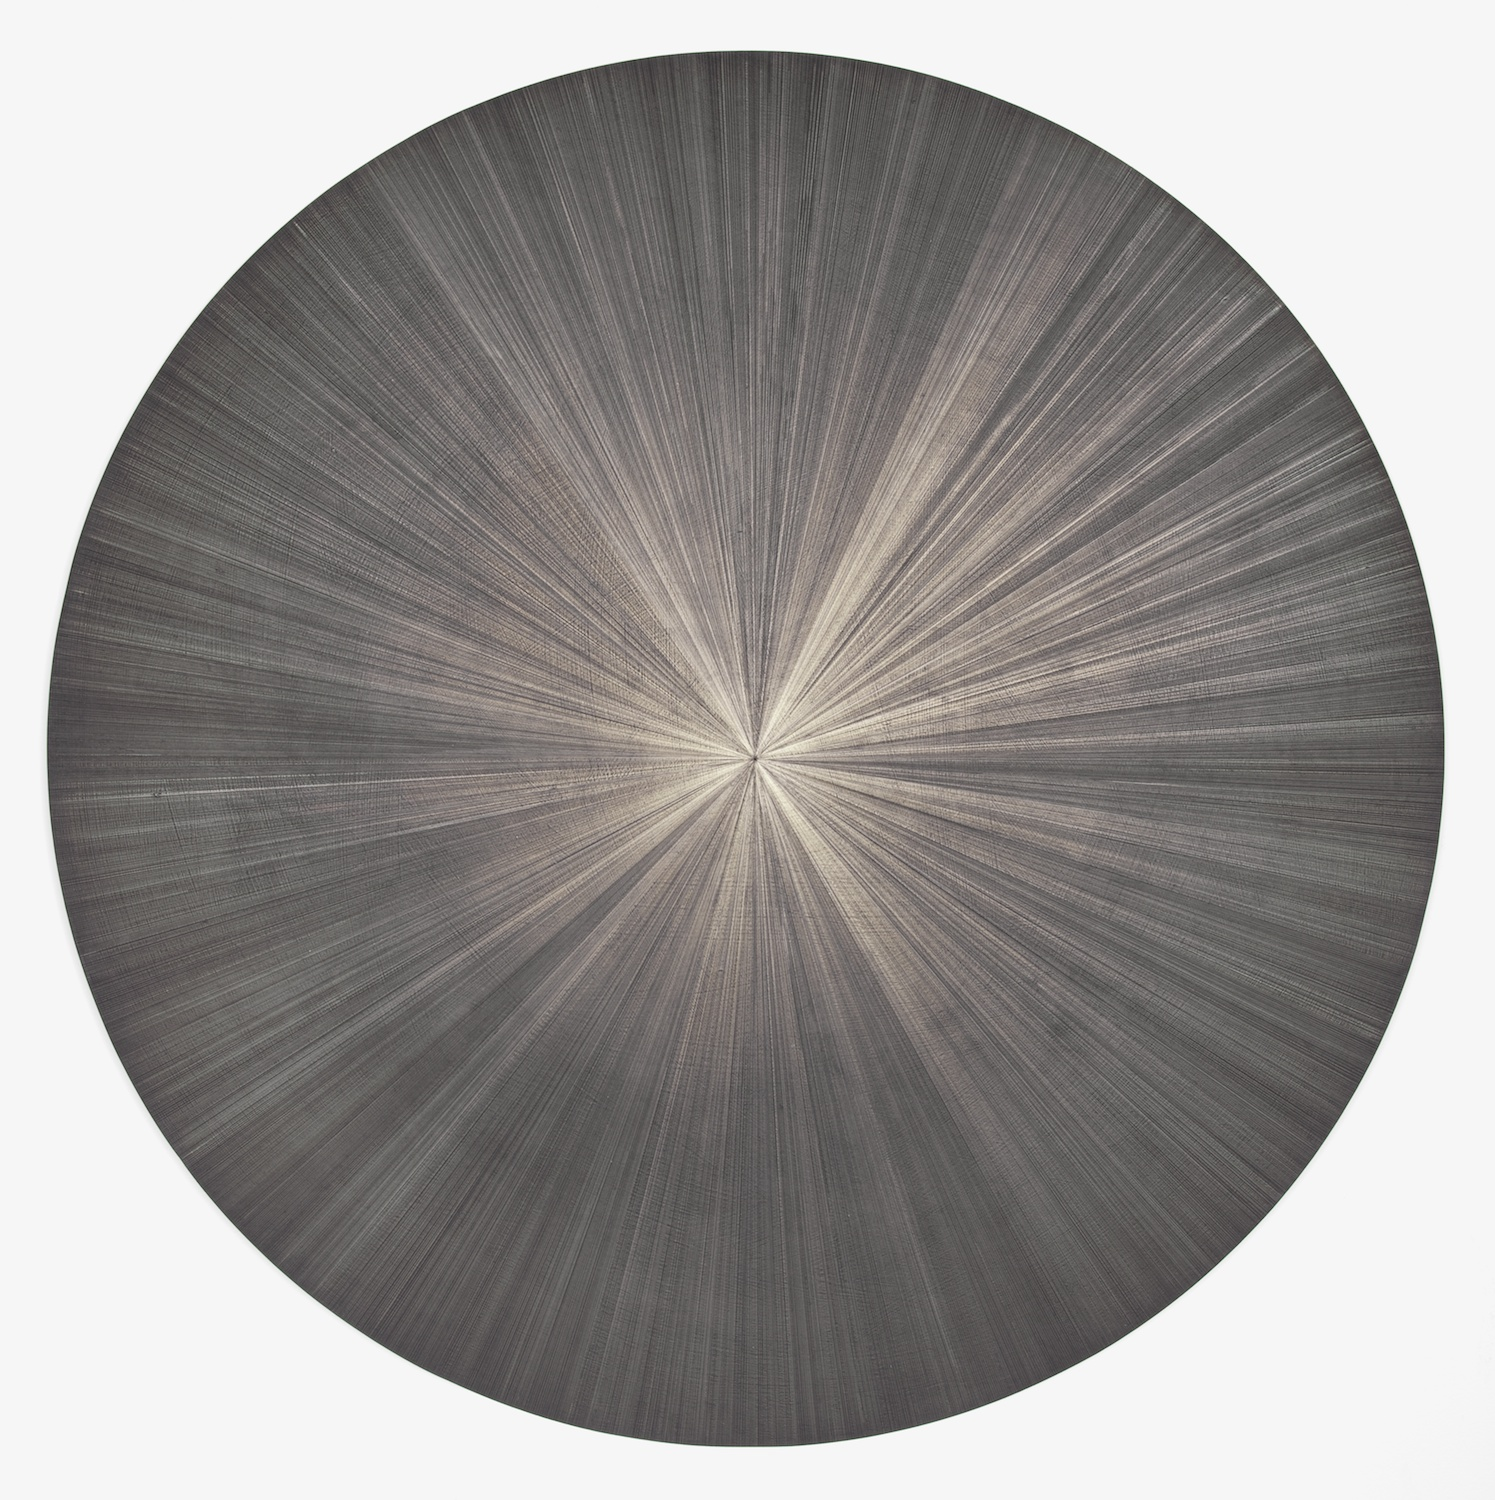 Michelle Grabner  Untitled  2012 Silverpoint and black gesso on canvas 36h x 36w in MGrab261